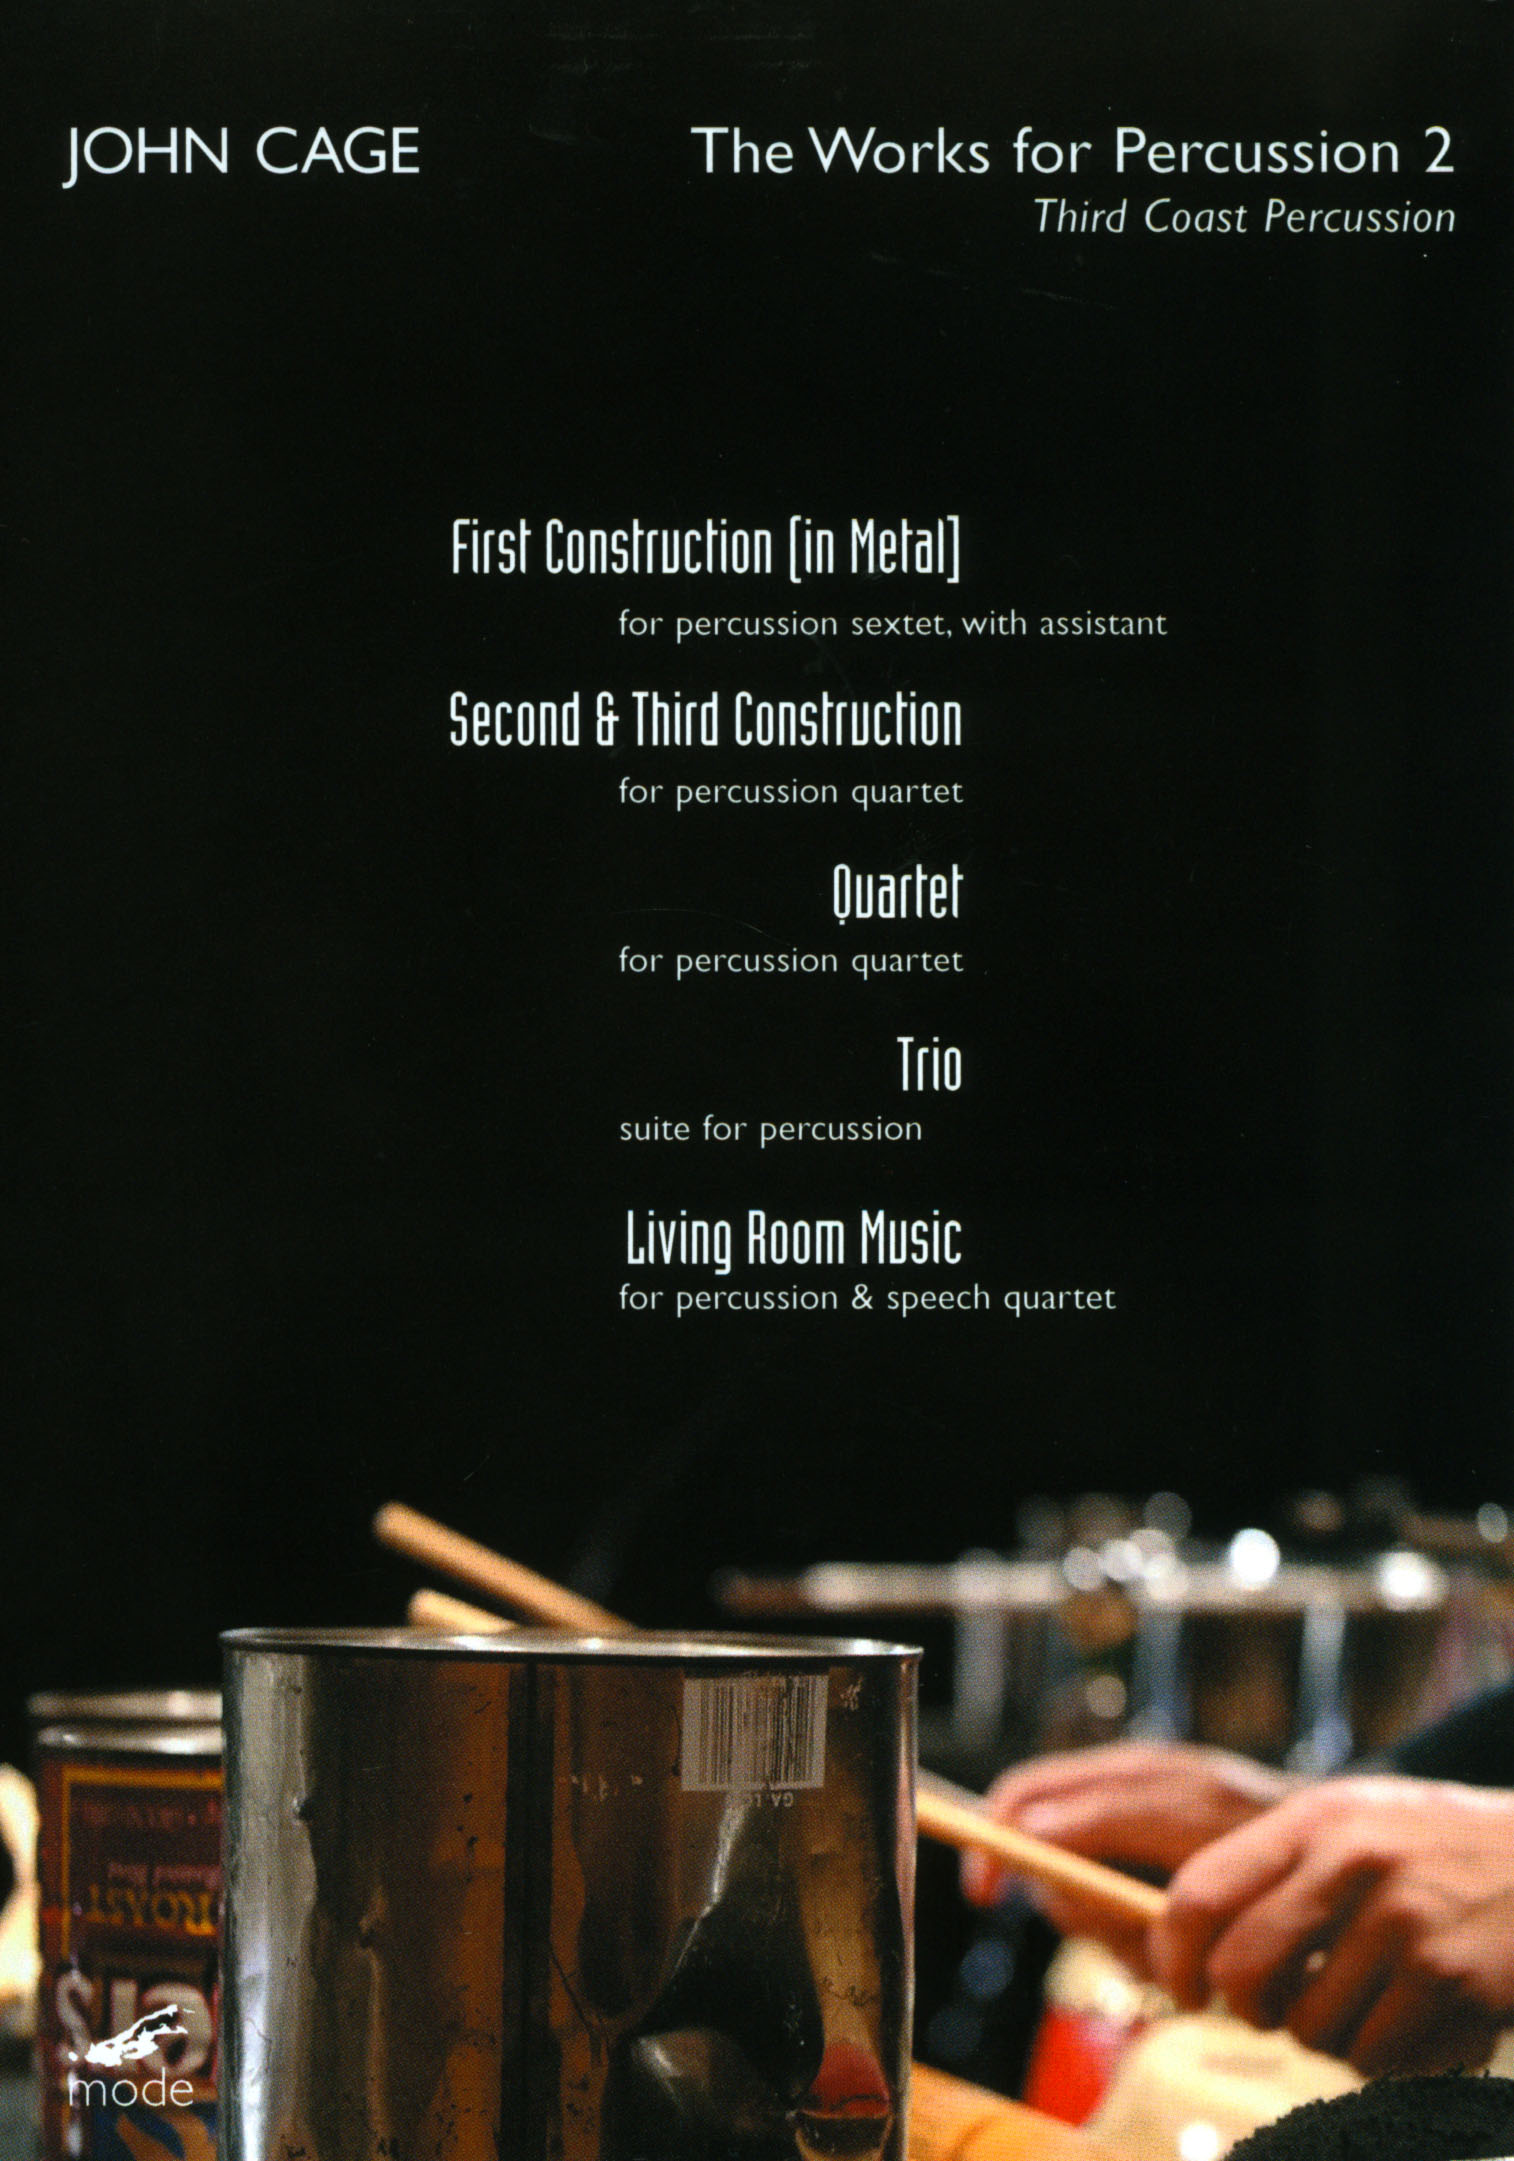 John Cage: The Works for Percussion, Vol. 2